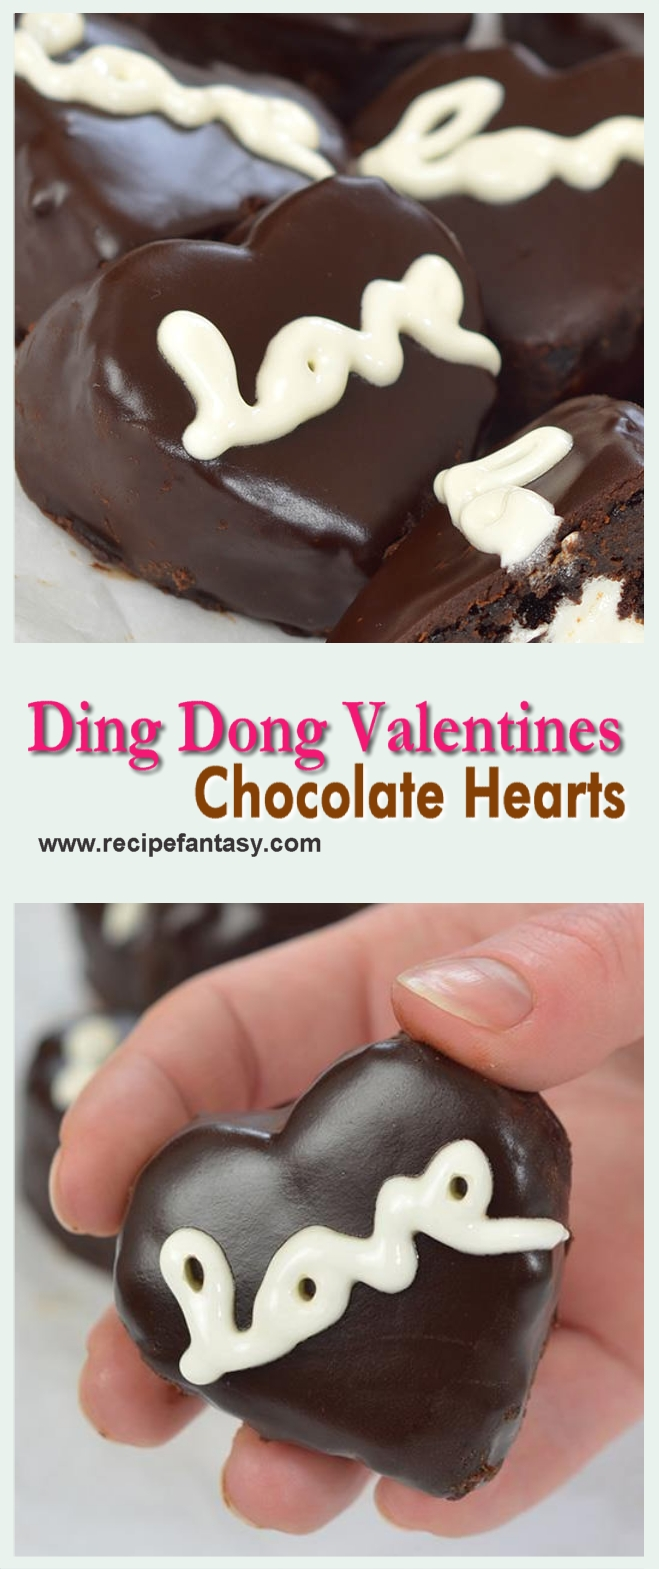 Ding Dong Valentines Chocolate Hearts